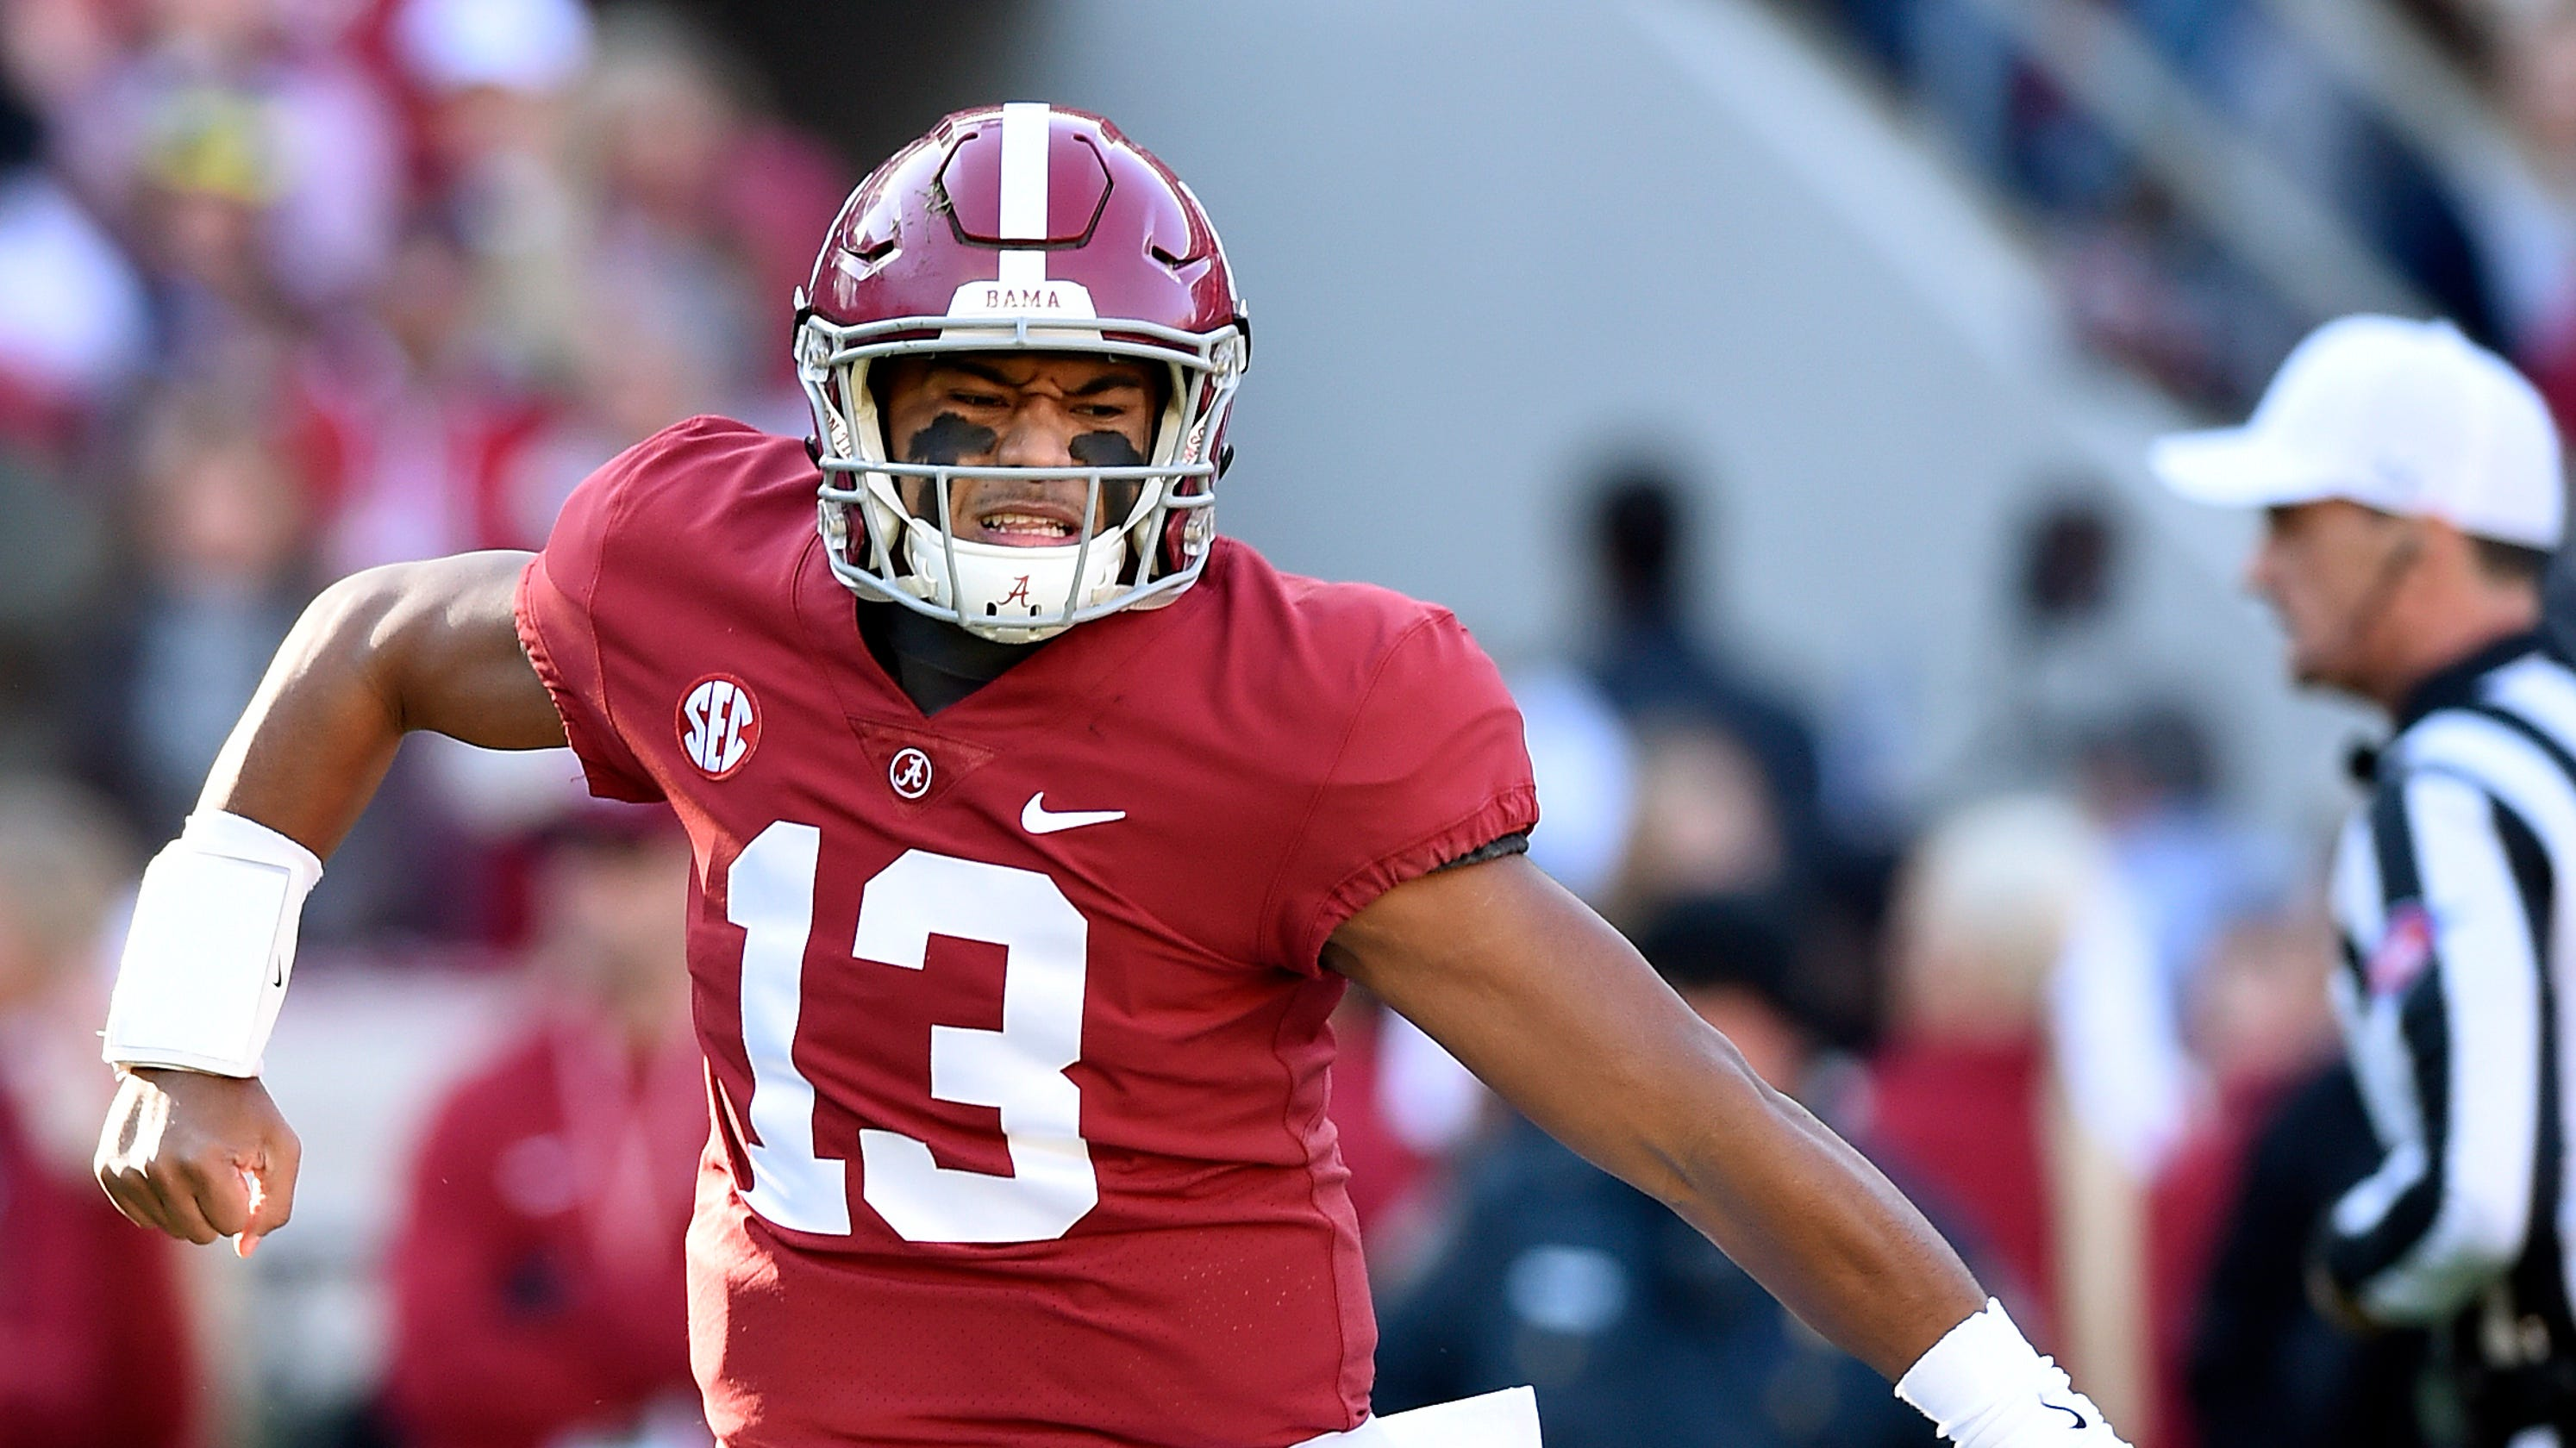 Tua Tagovailoa: What To Know About Alabama Football's Star